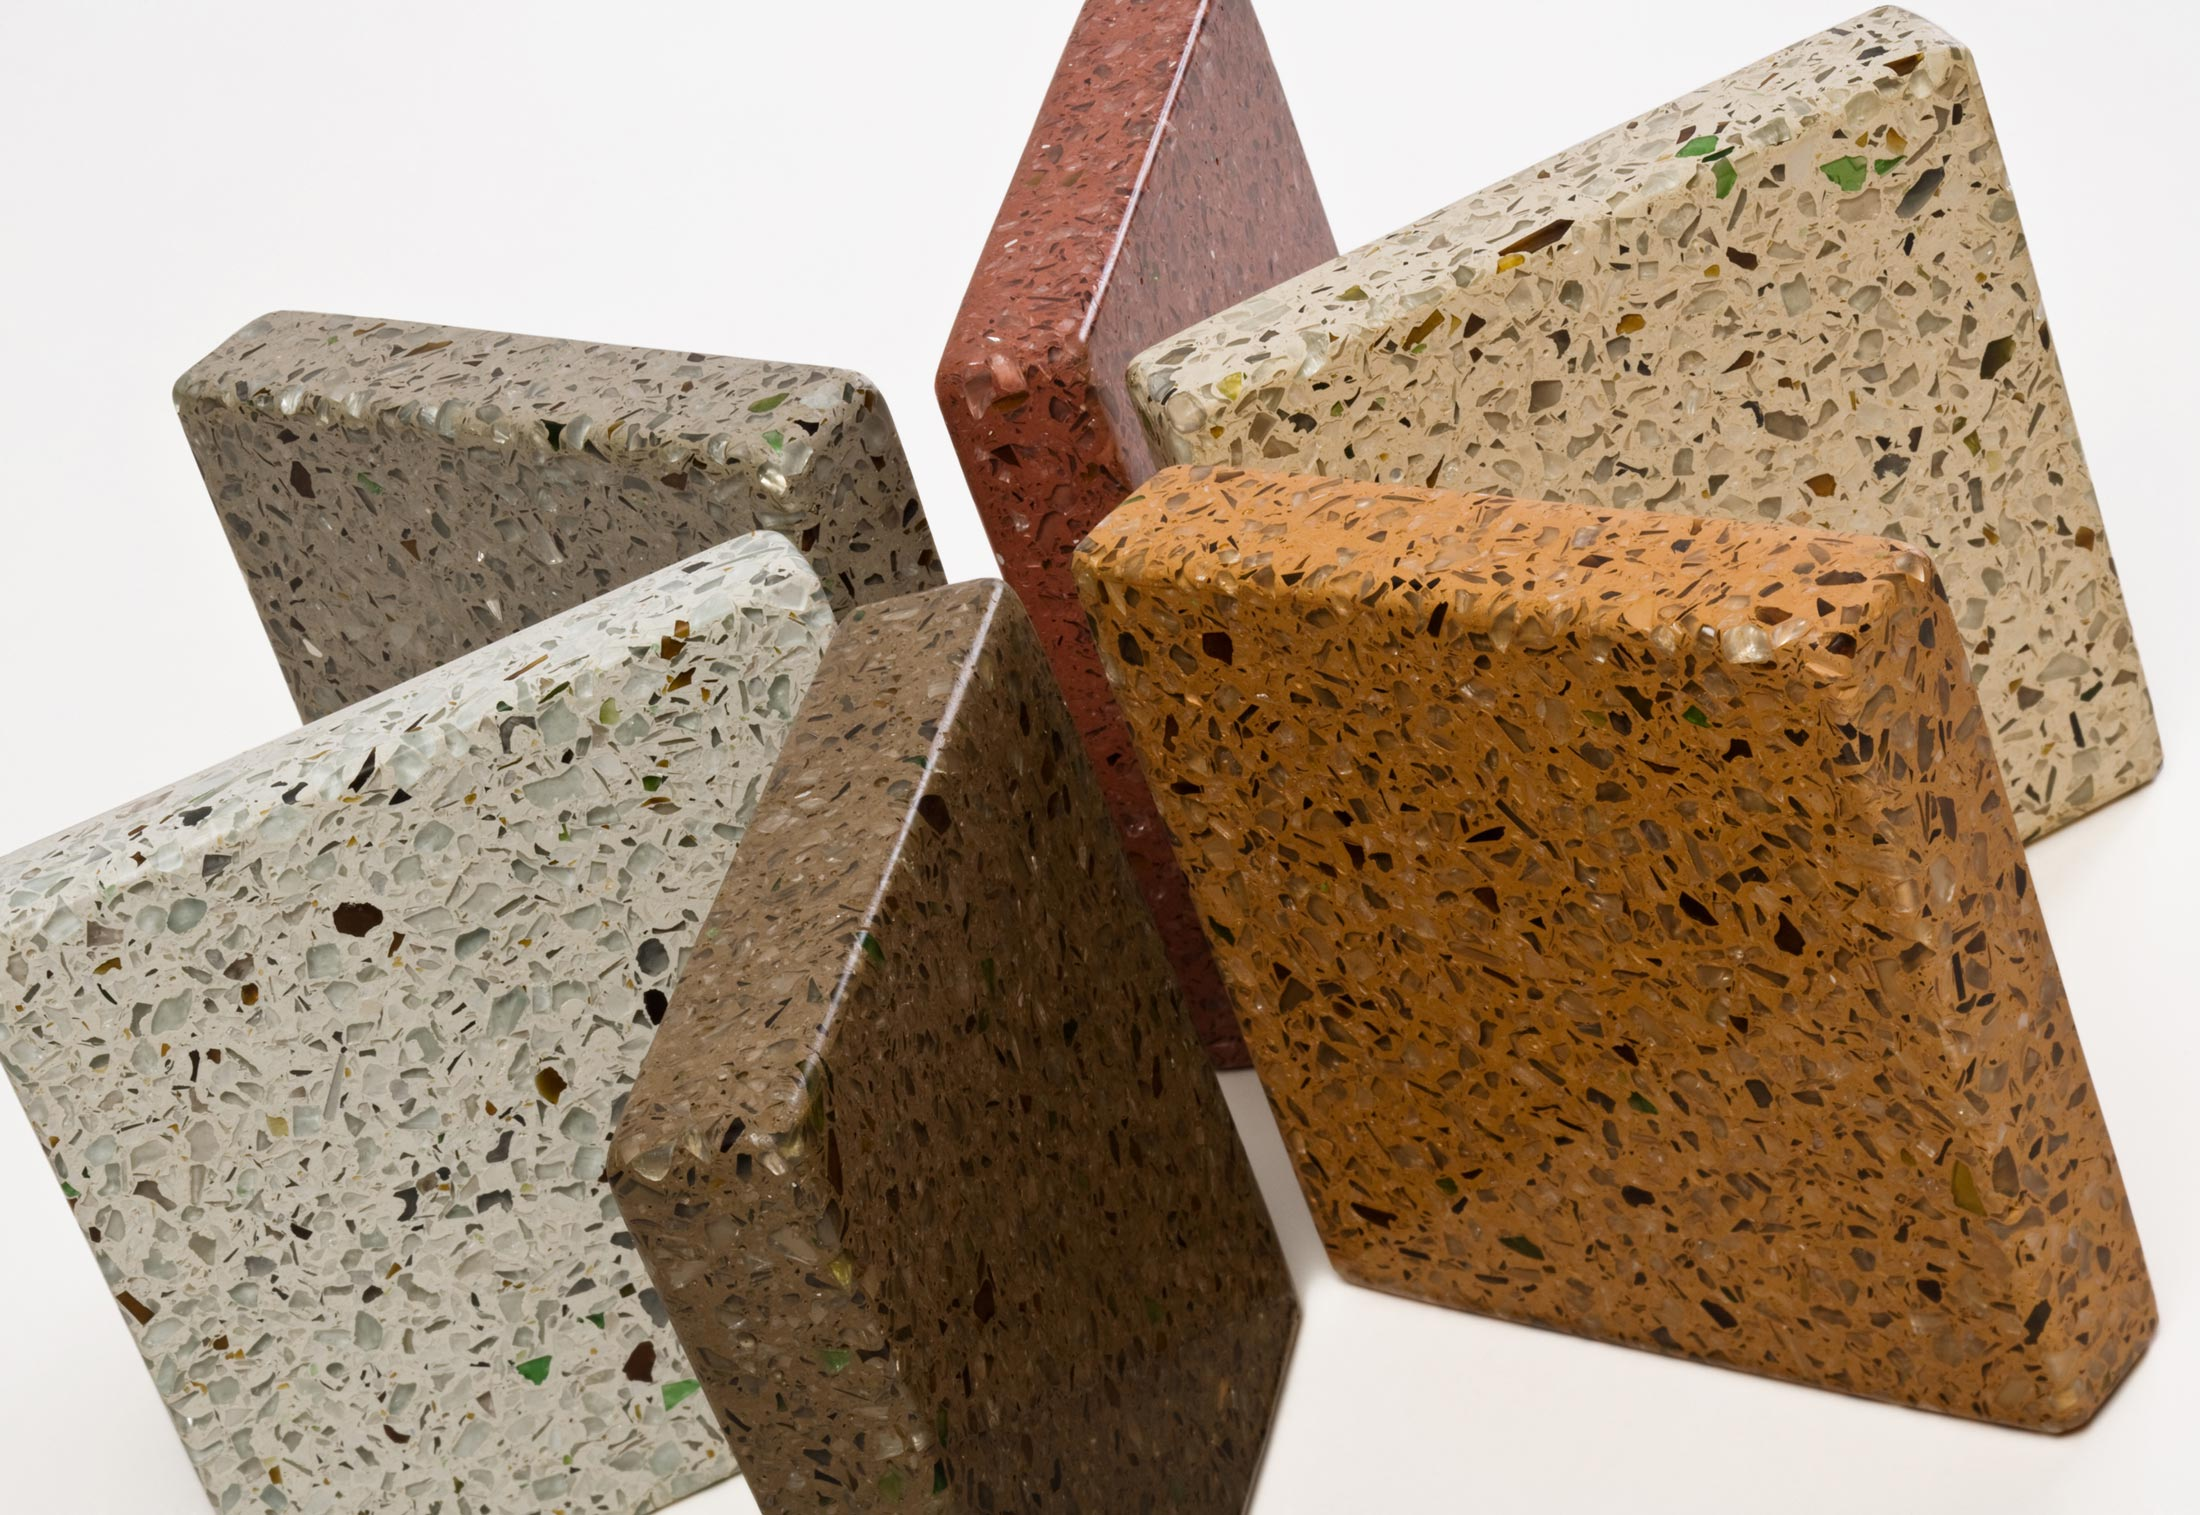 eco concrete buildings essay The role of limestone and gravel in buildings most commonly used aggregates for concrete and concrete is the of limestone and gravel in buildings essay.